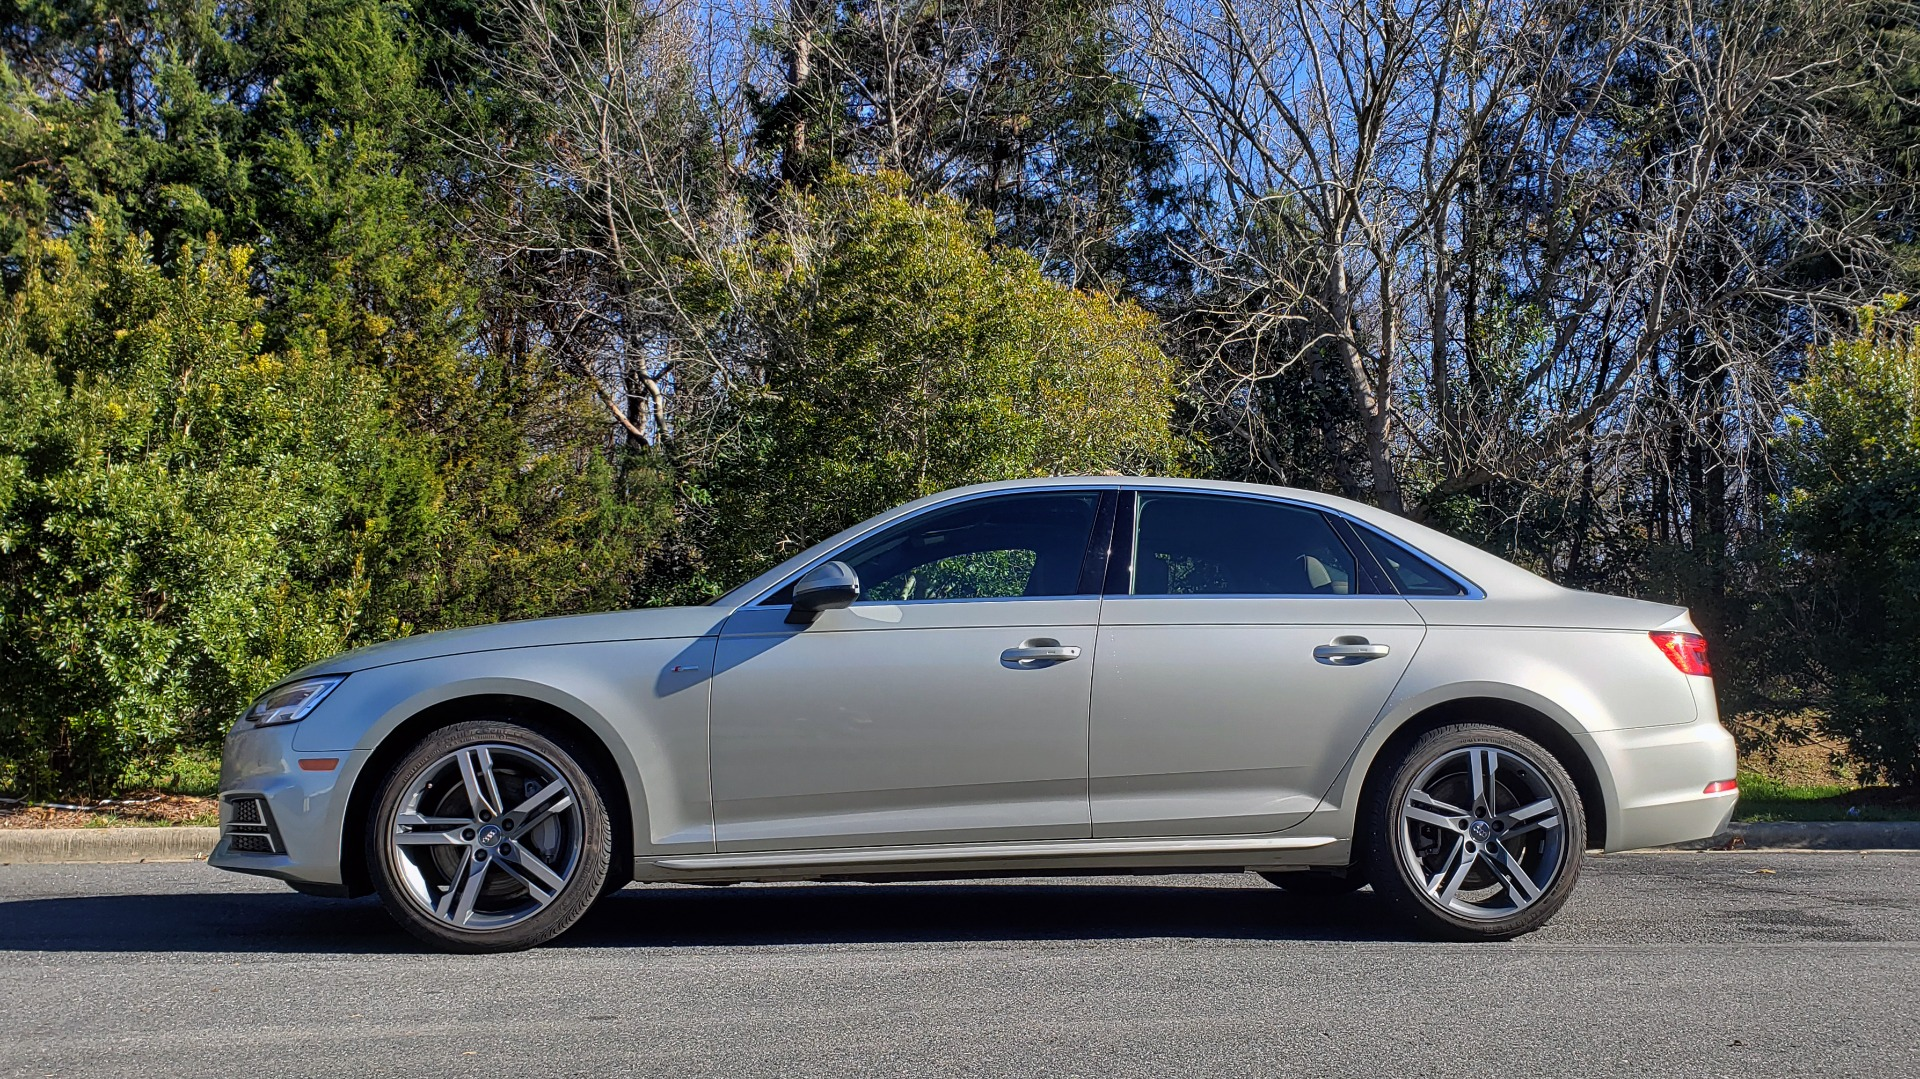 Used 2017 Audi A4 PREMIUM PLUS / TECH PKG / B&O SND / S-LINE / NAV / REARVIEW for sale Sold at Formula Imports in Charlotte NC 28227 2